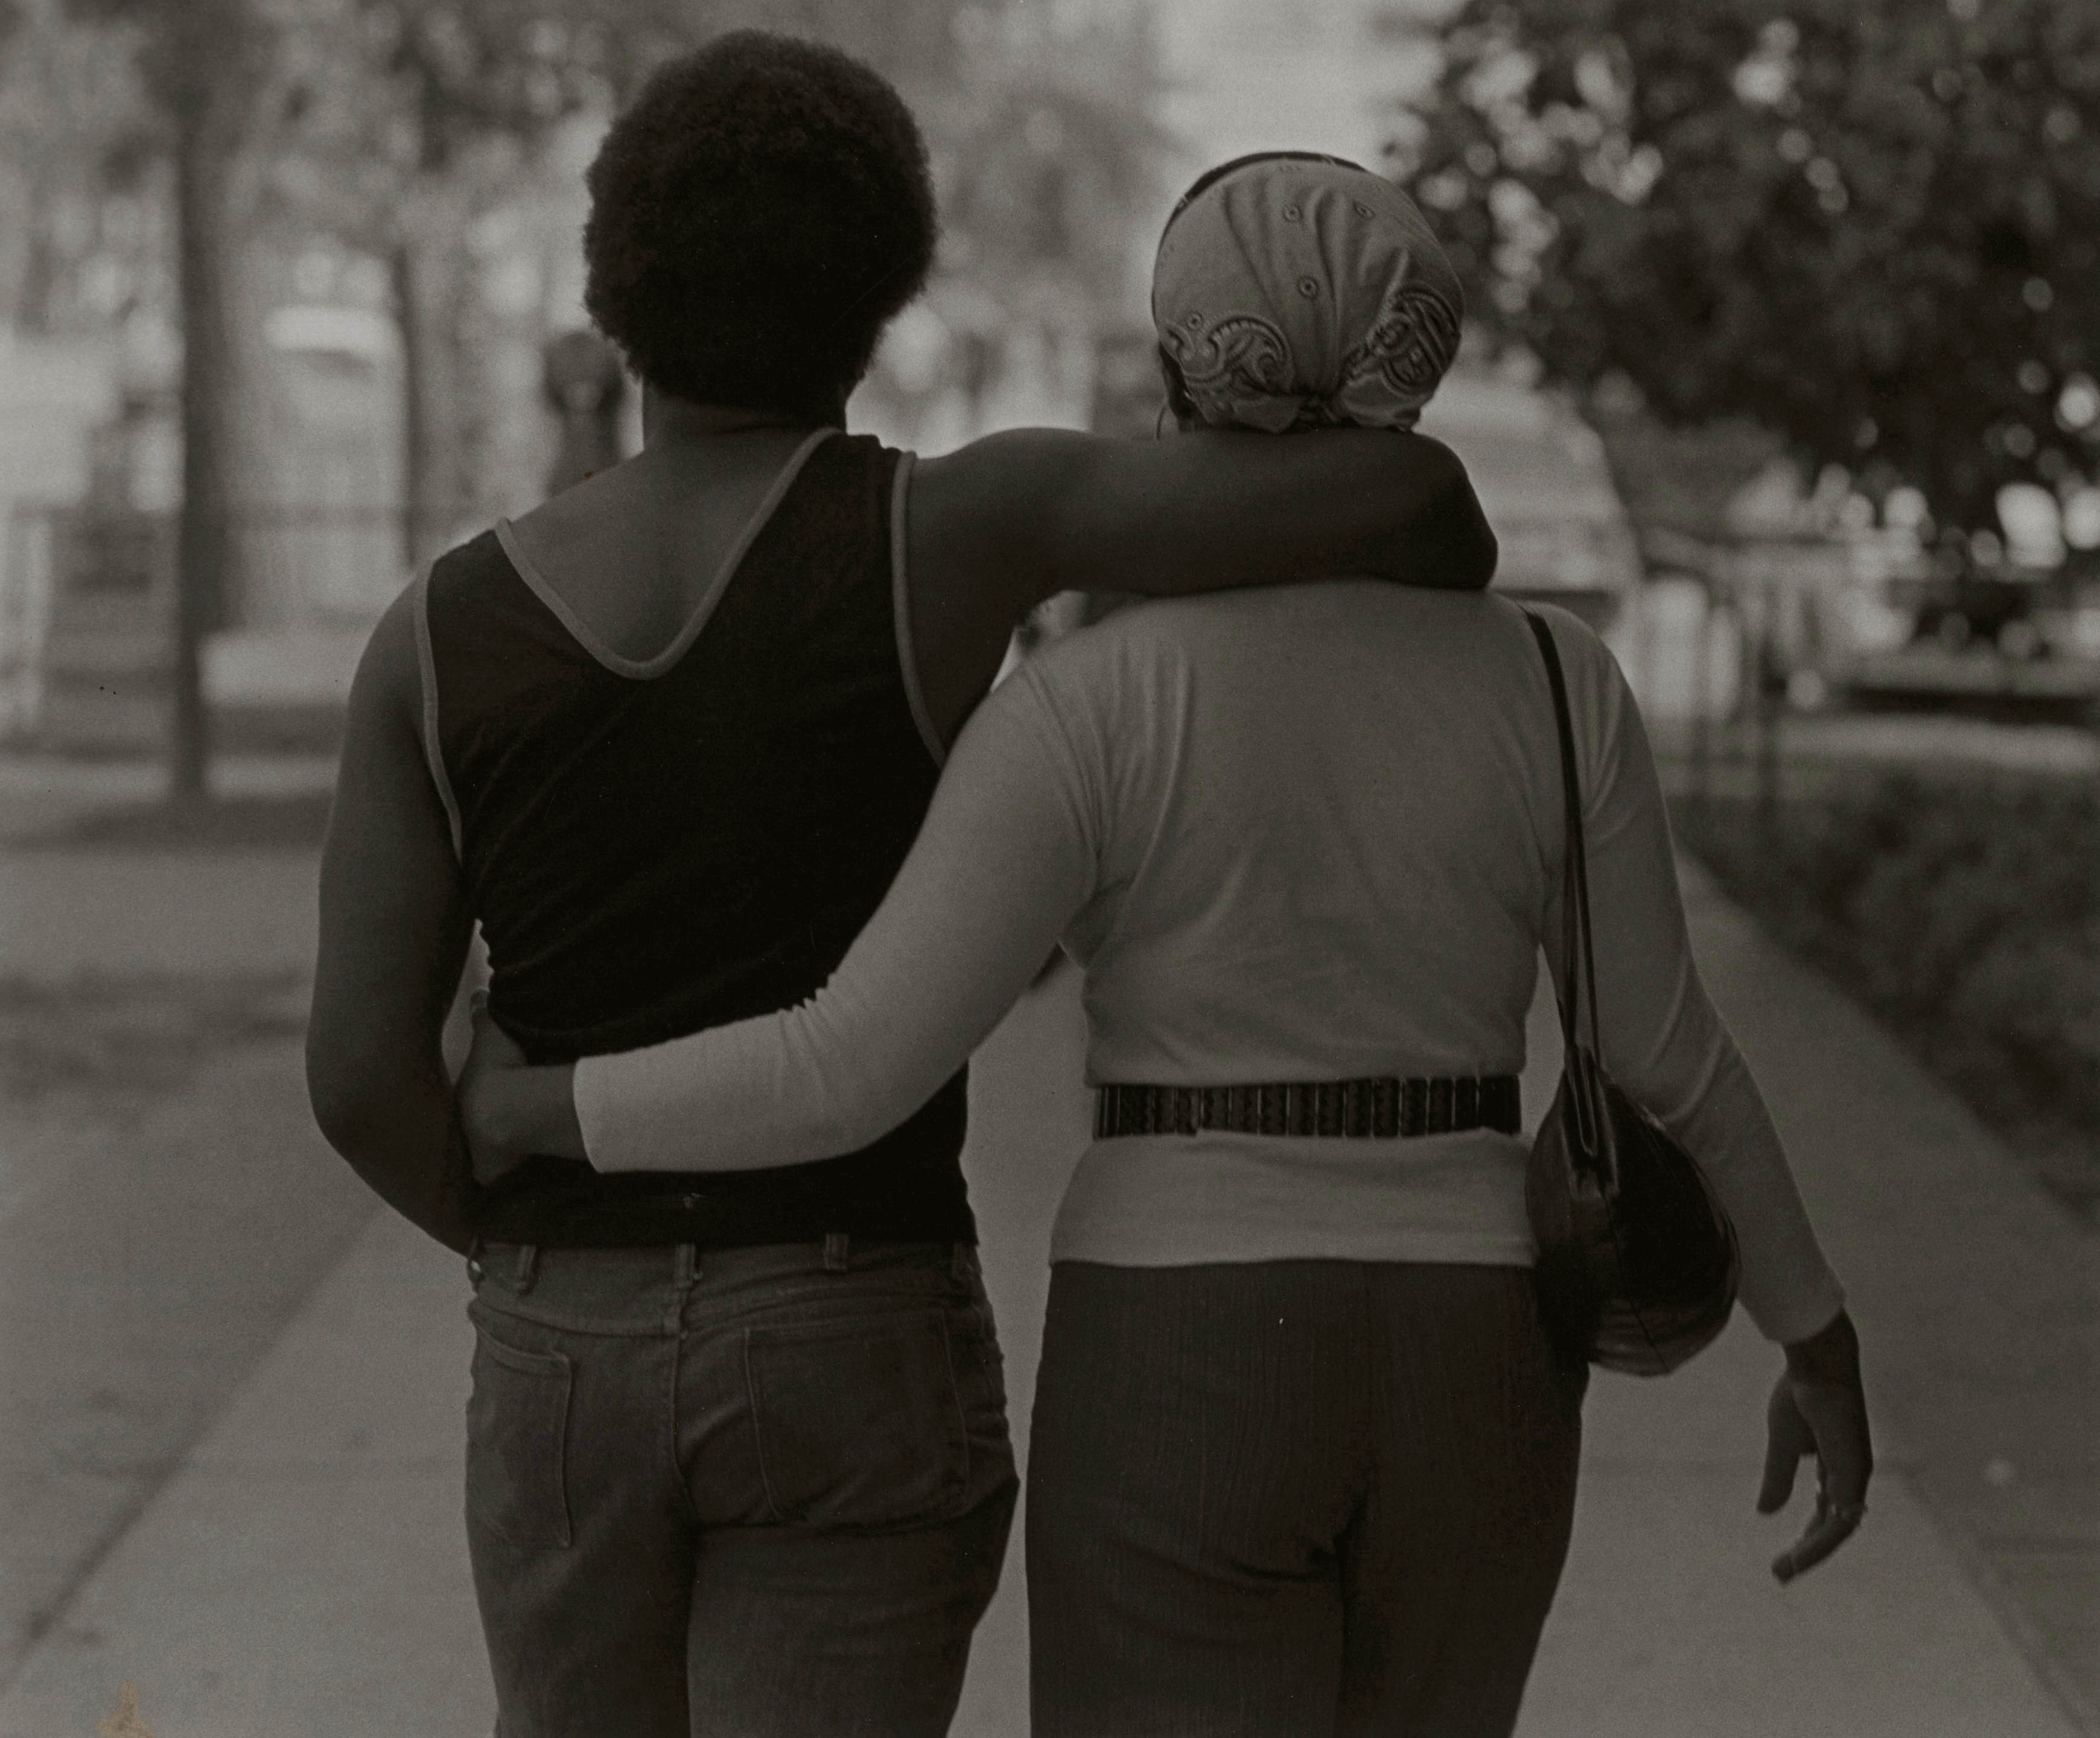 Couple Walking von Roy DeCarava, 1979, Copyright: Courtesy Sherry DeCarava and the DeCarava Archive